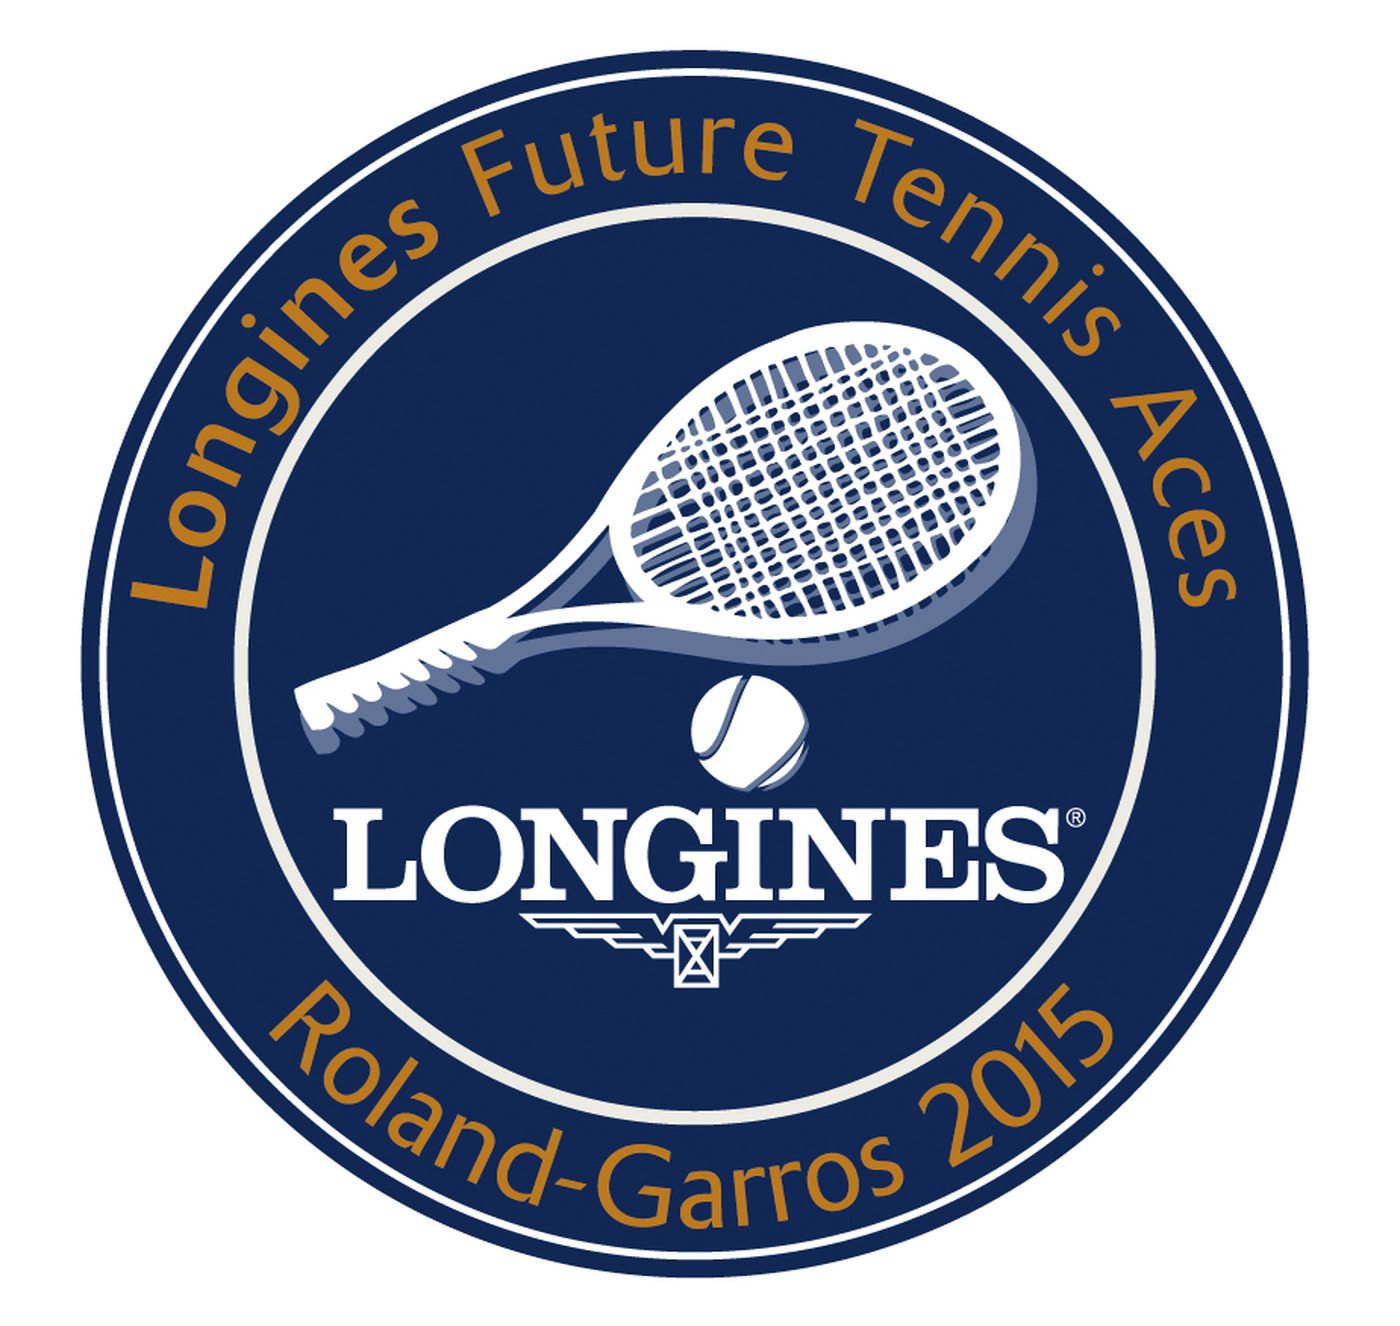 Longines  Event: Longines Future Tennis Aces 2015: a meeting of talented young players in the heart of Paris 5